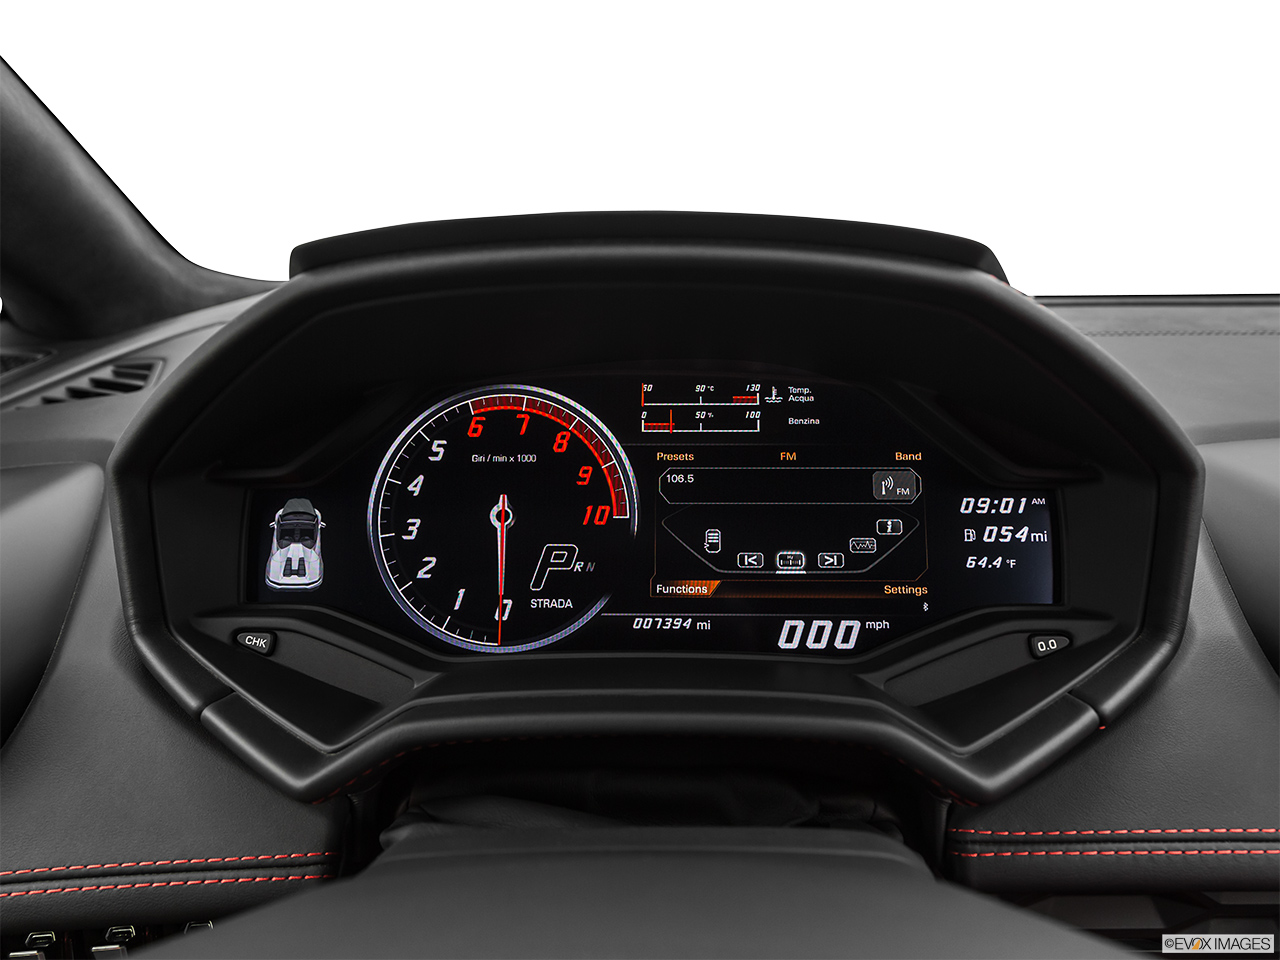 2019 Lamborghini Huracan Spyder LP580-2S Closeup of radio head unit